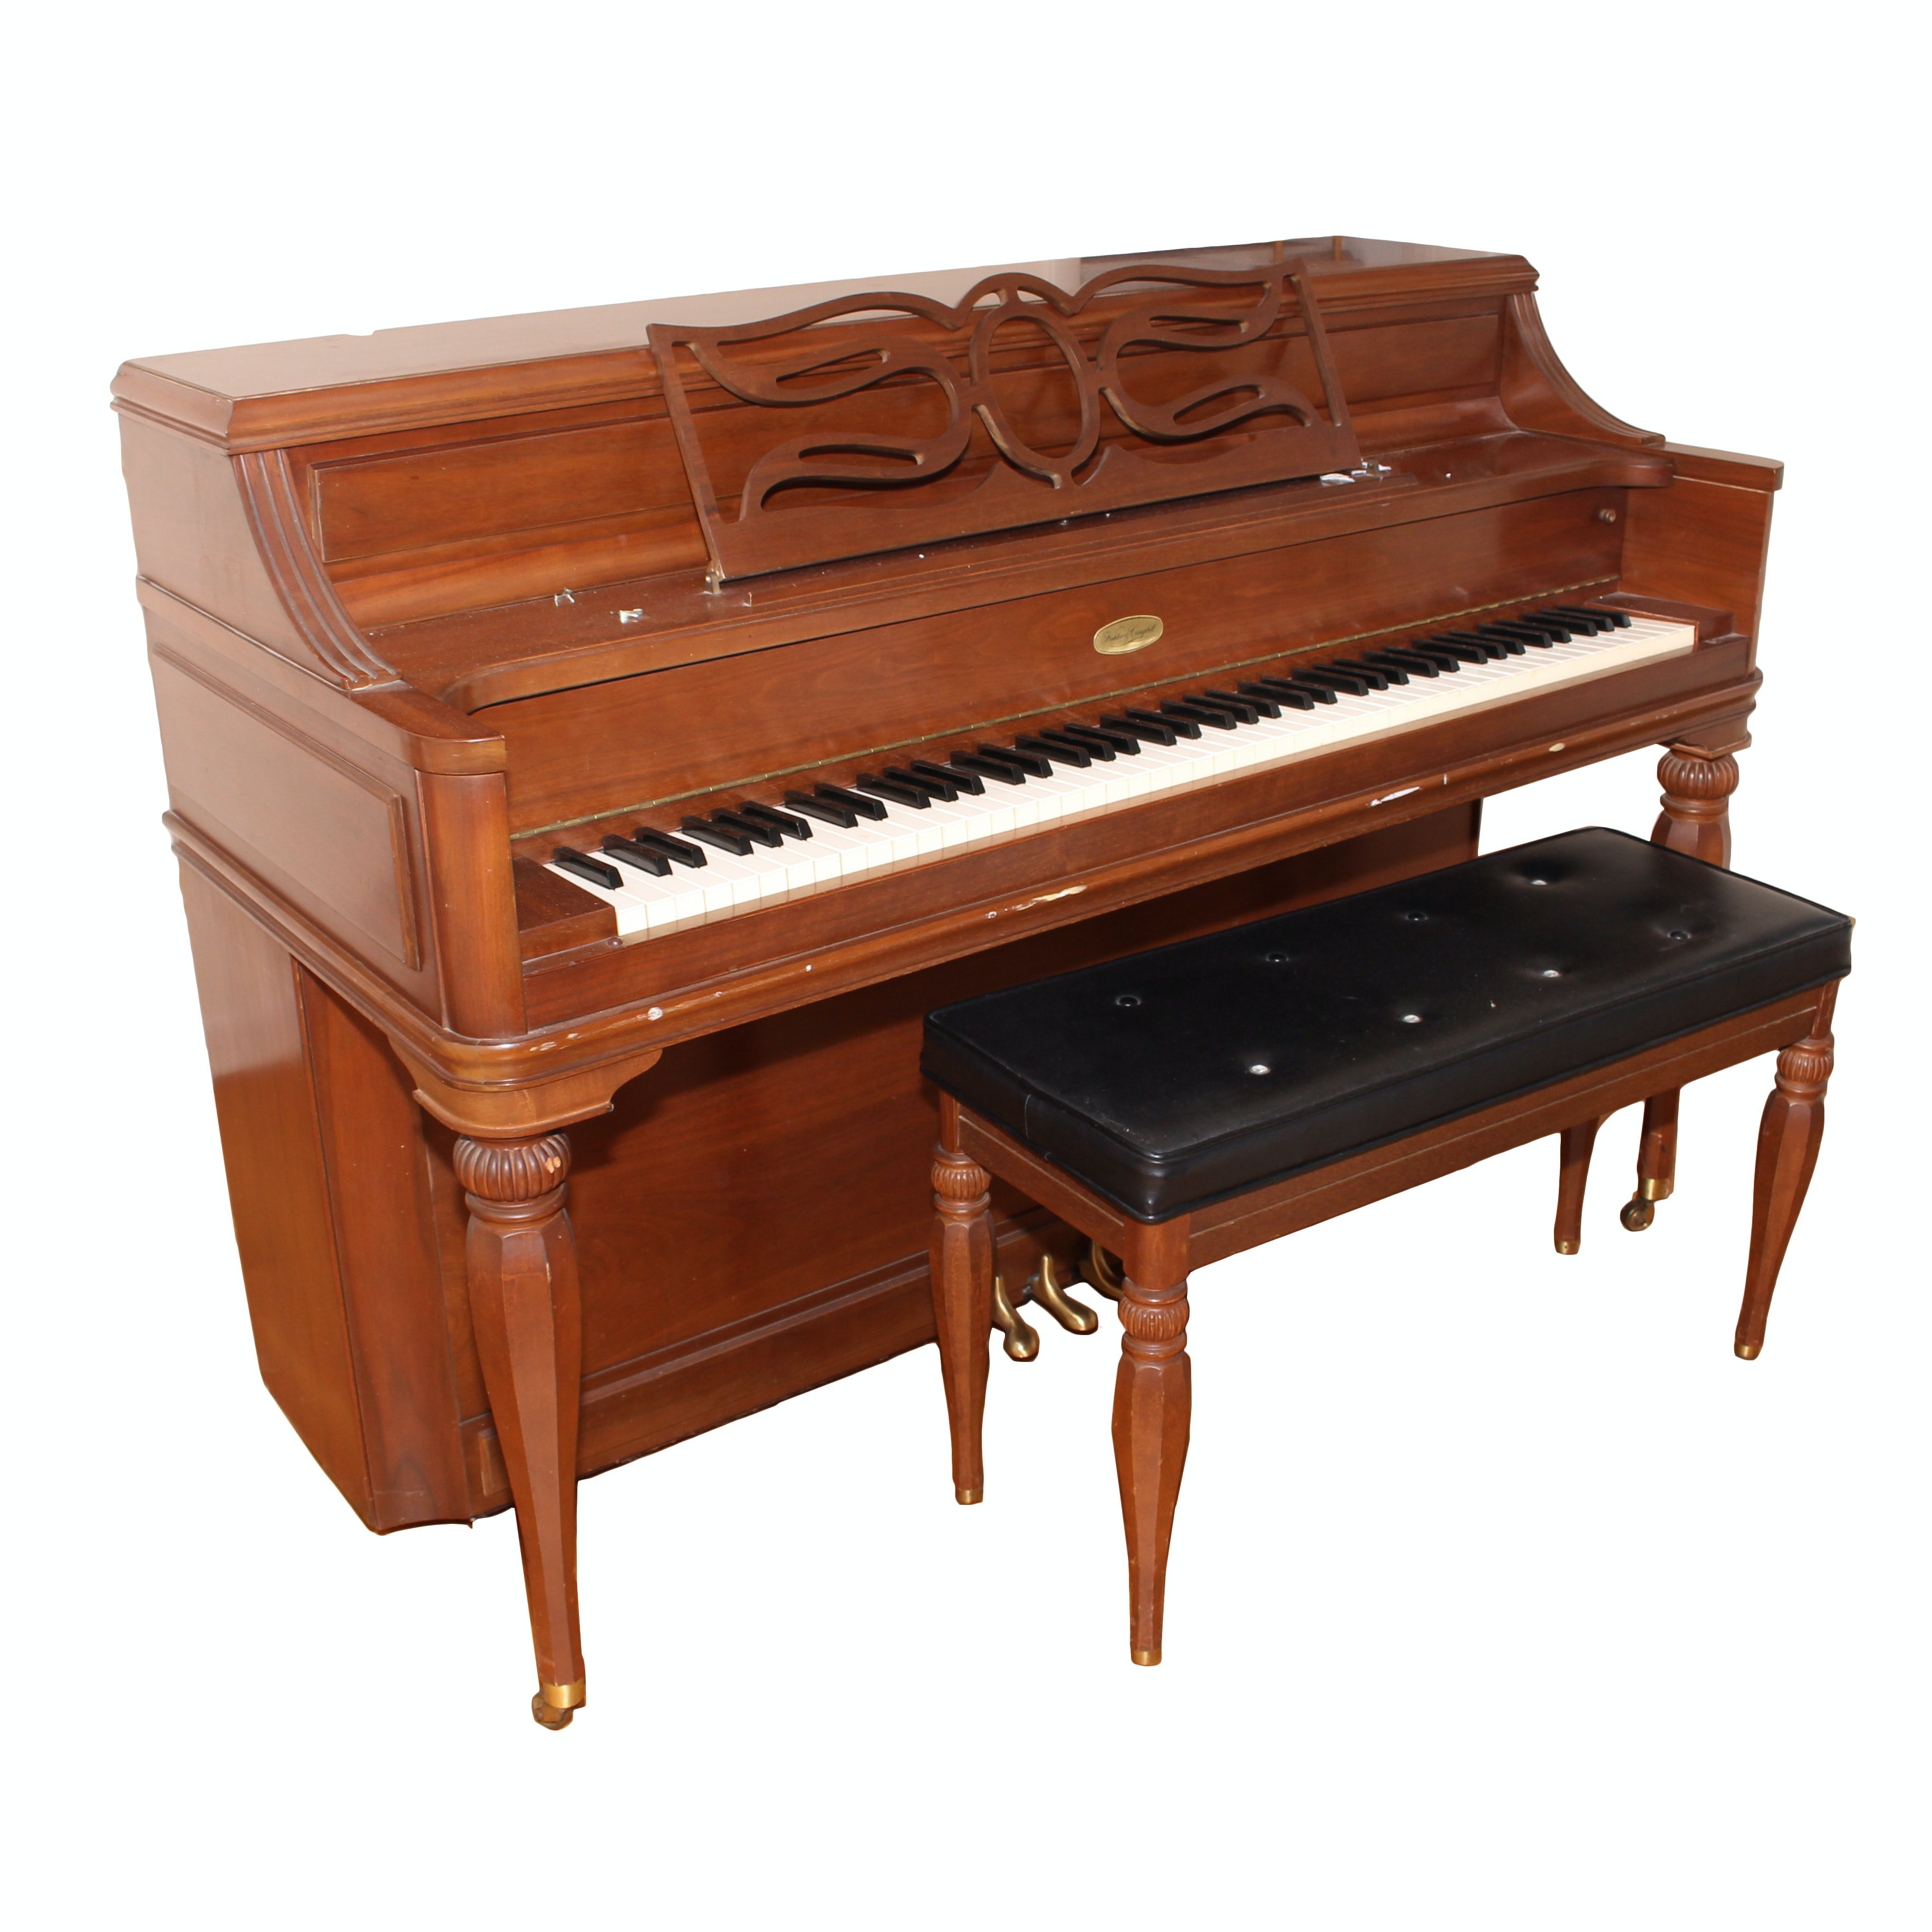 Kohler & Campbell Piano and Bench